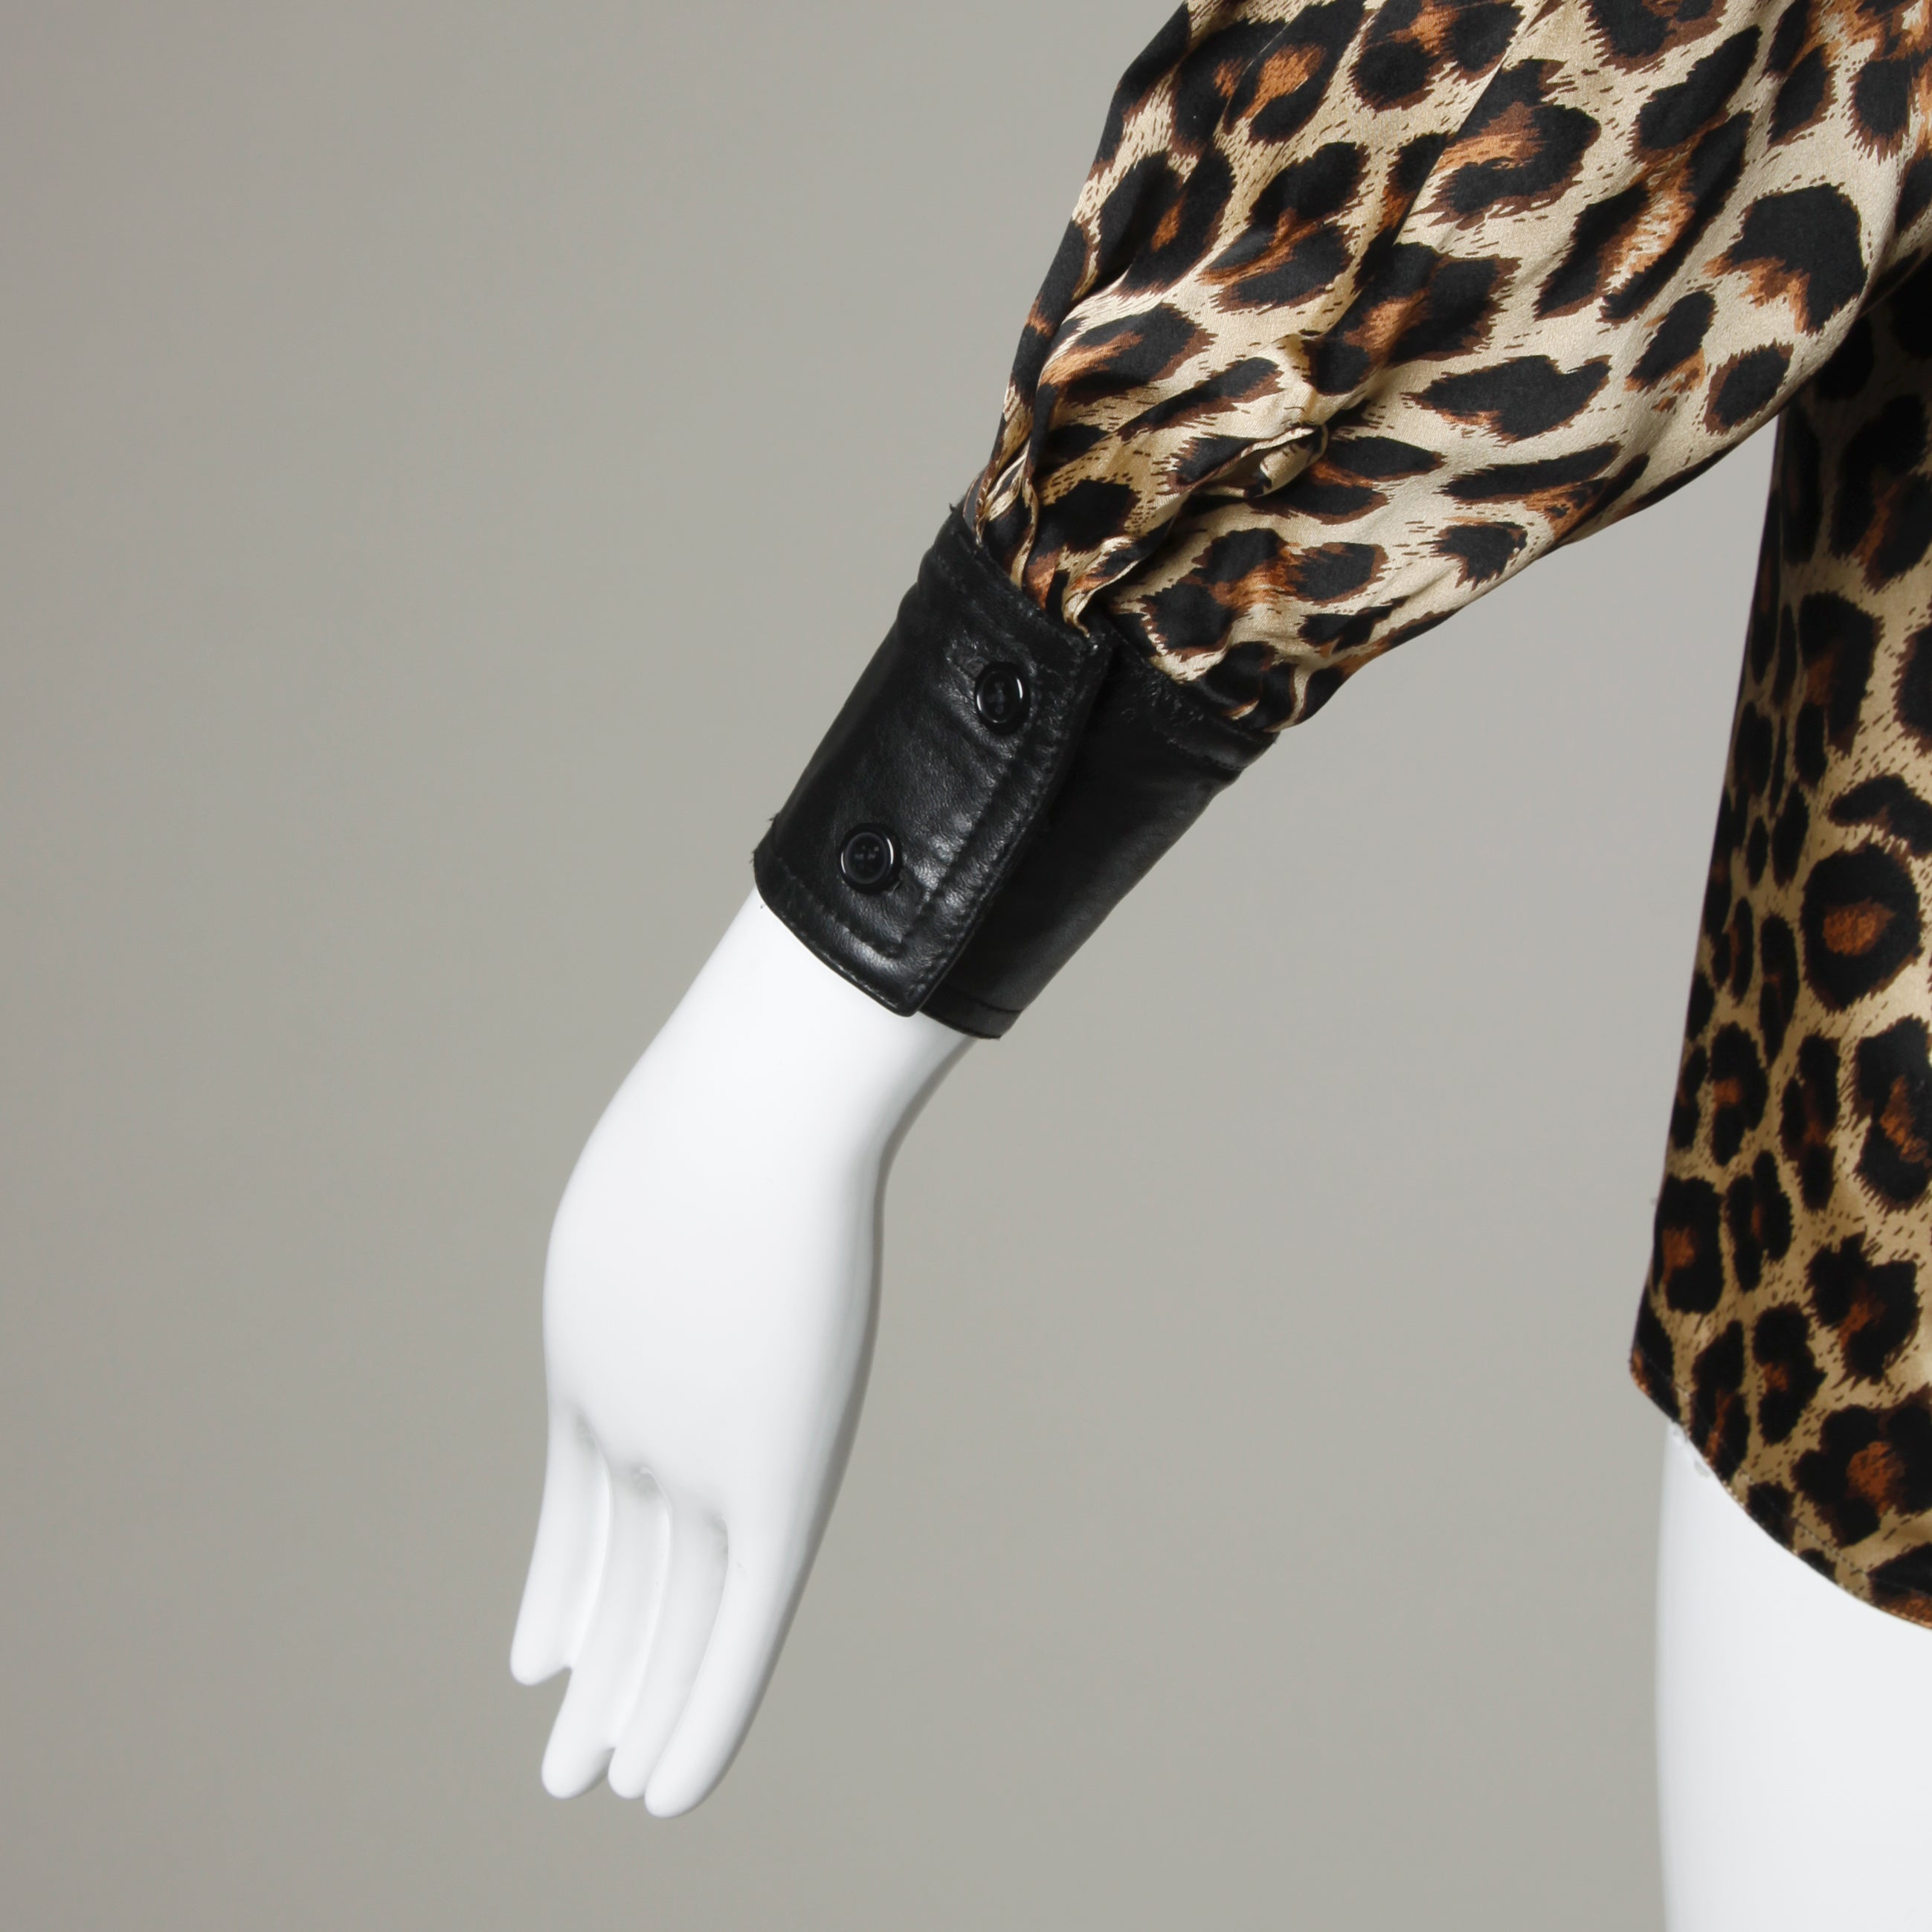 6f4ae25576aa7 Lillie Rubin Vintage Silk Leopard Print Blouse with Leather Trim at 1stdibs